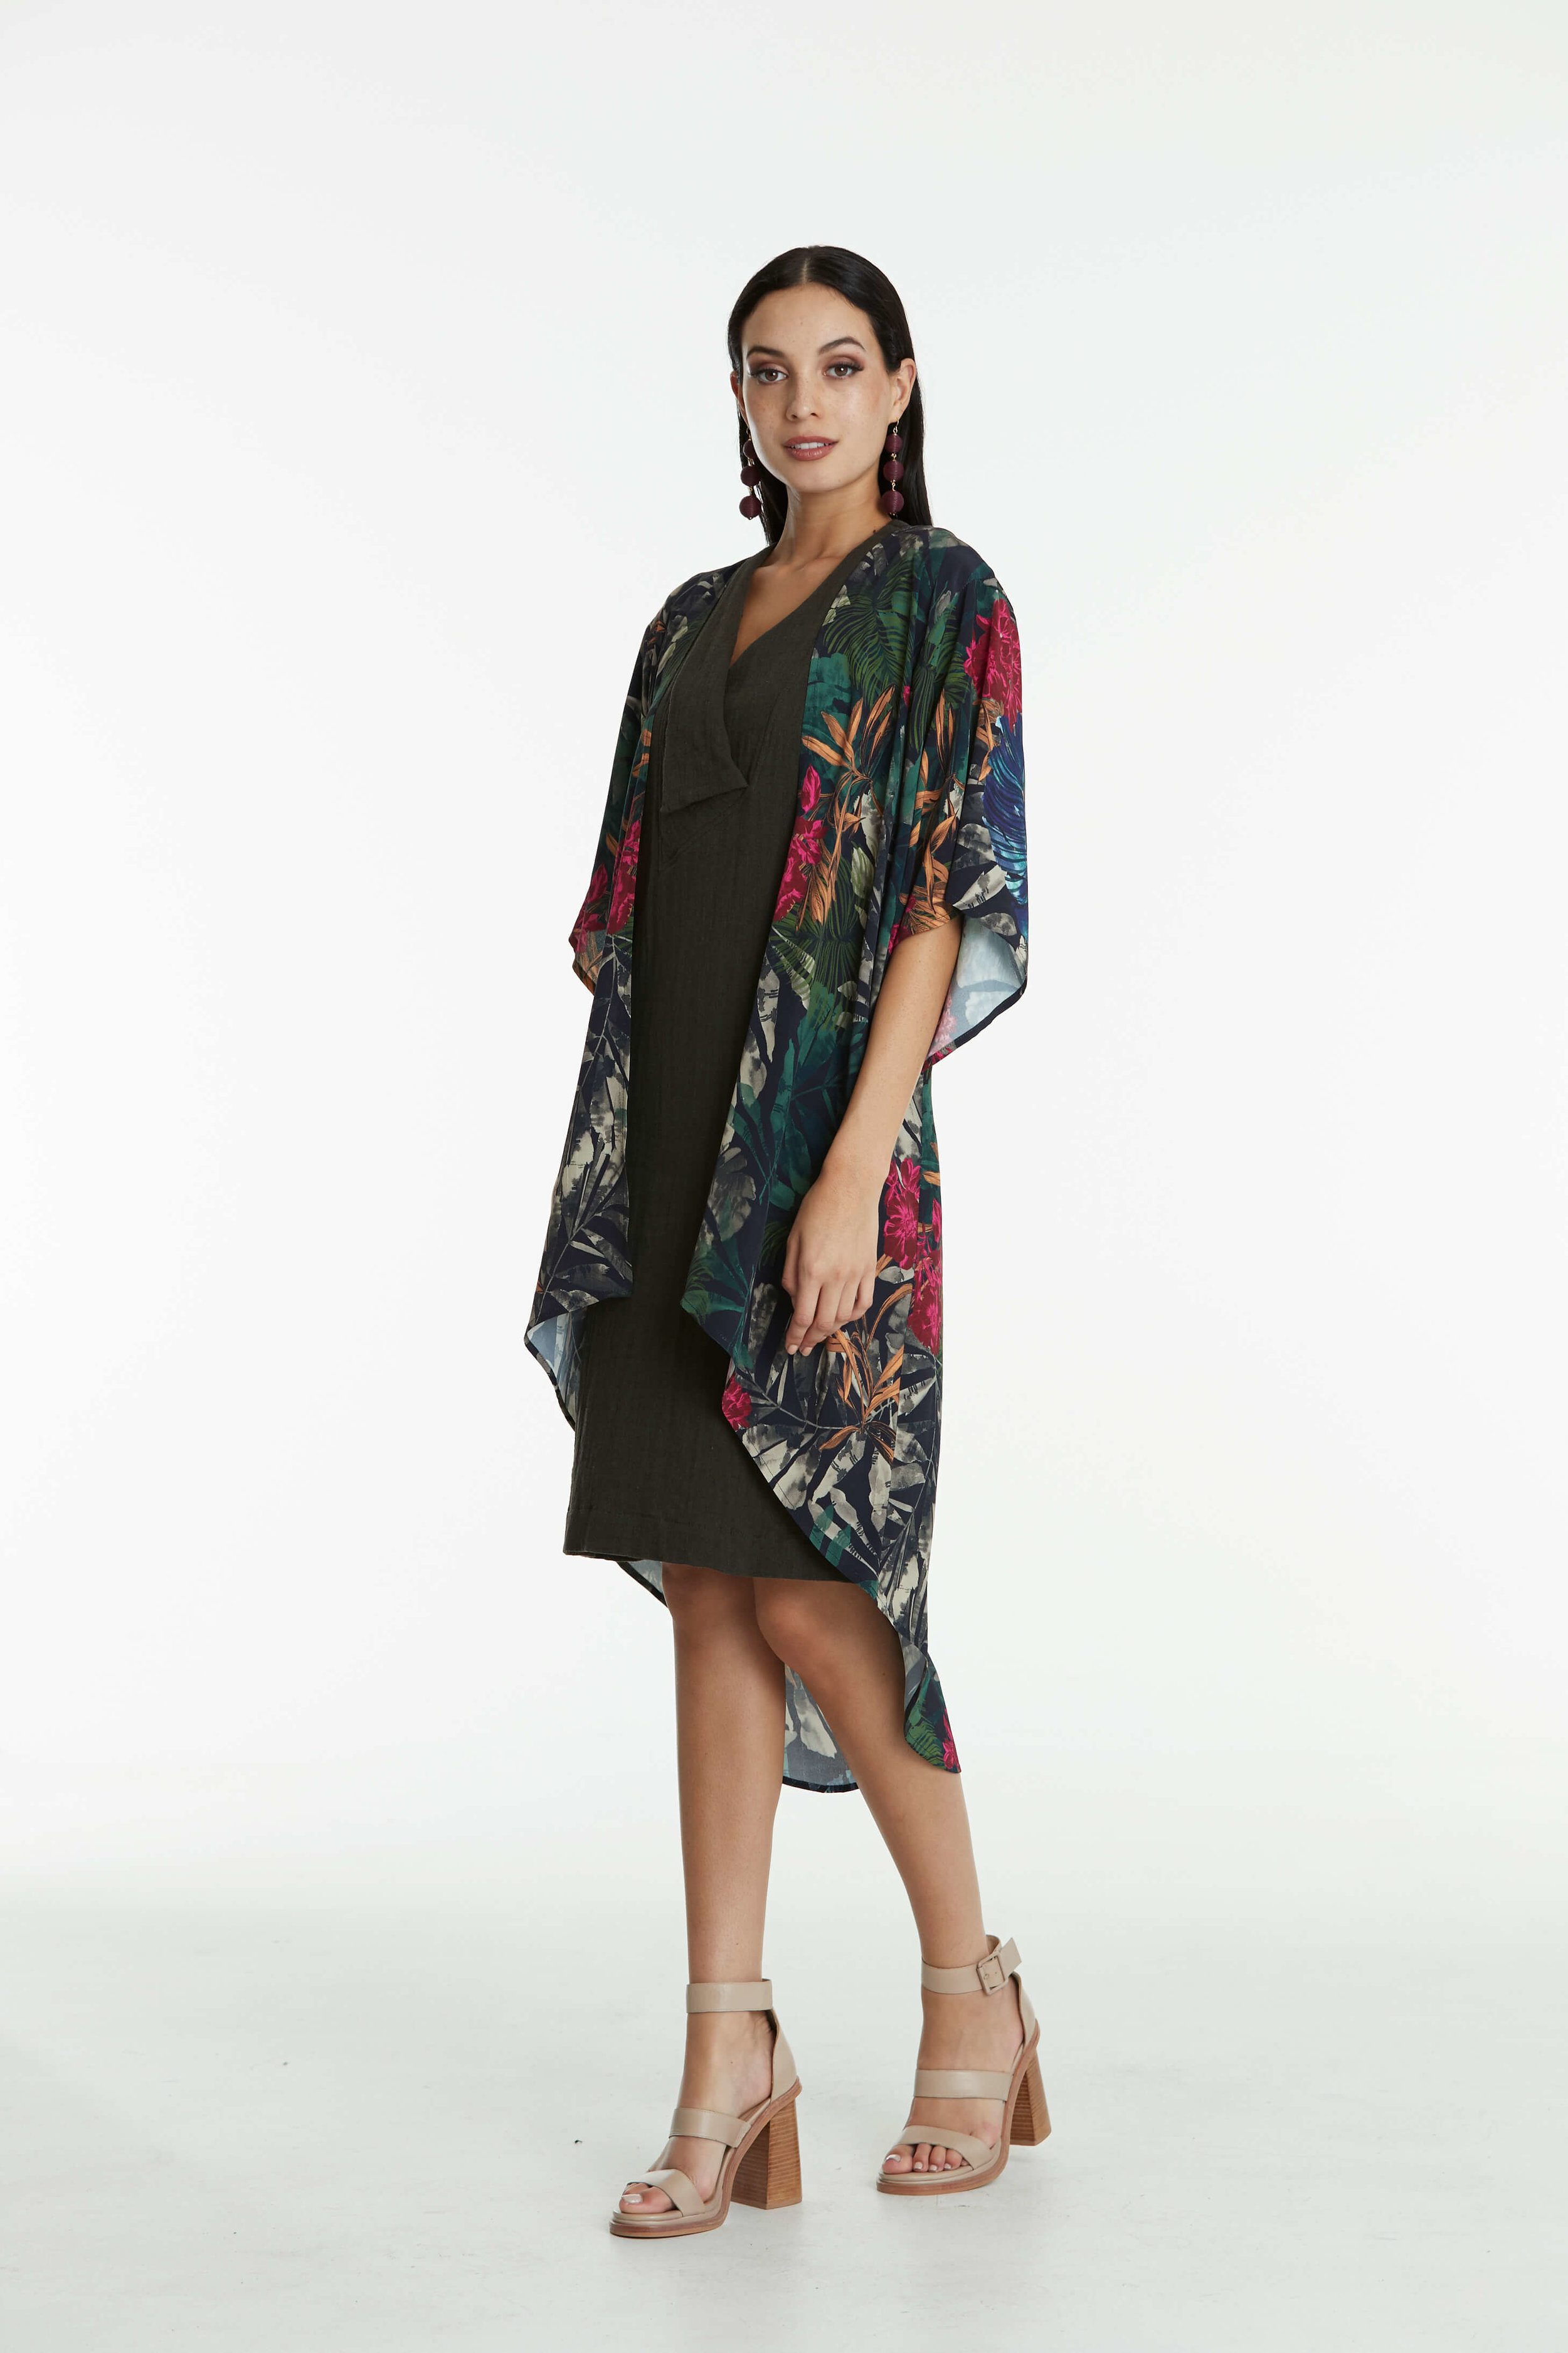 83363UJ Jungle Kimono,  83647 Urban Shift Dress.jpg